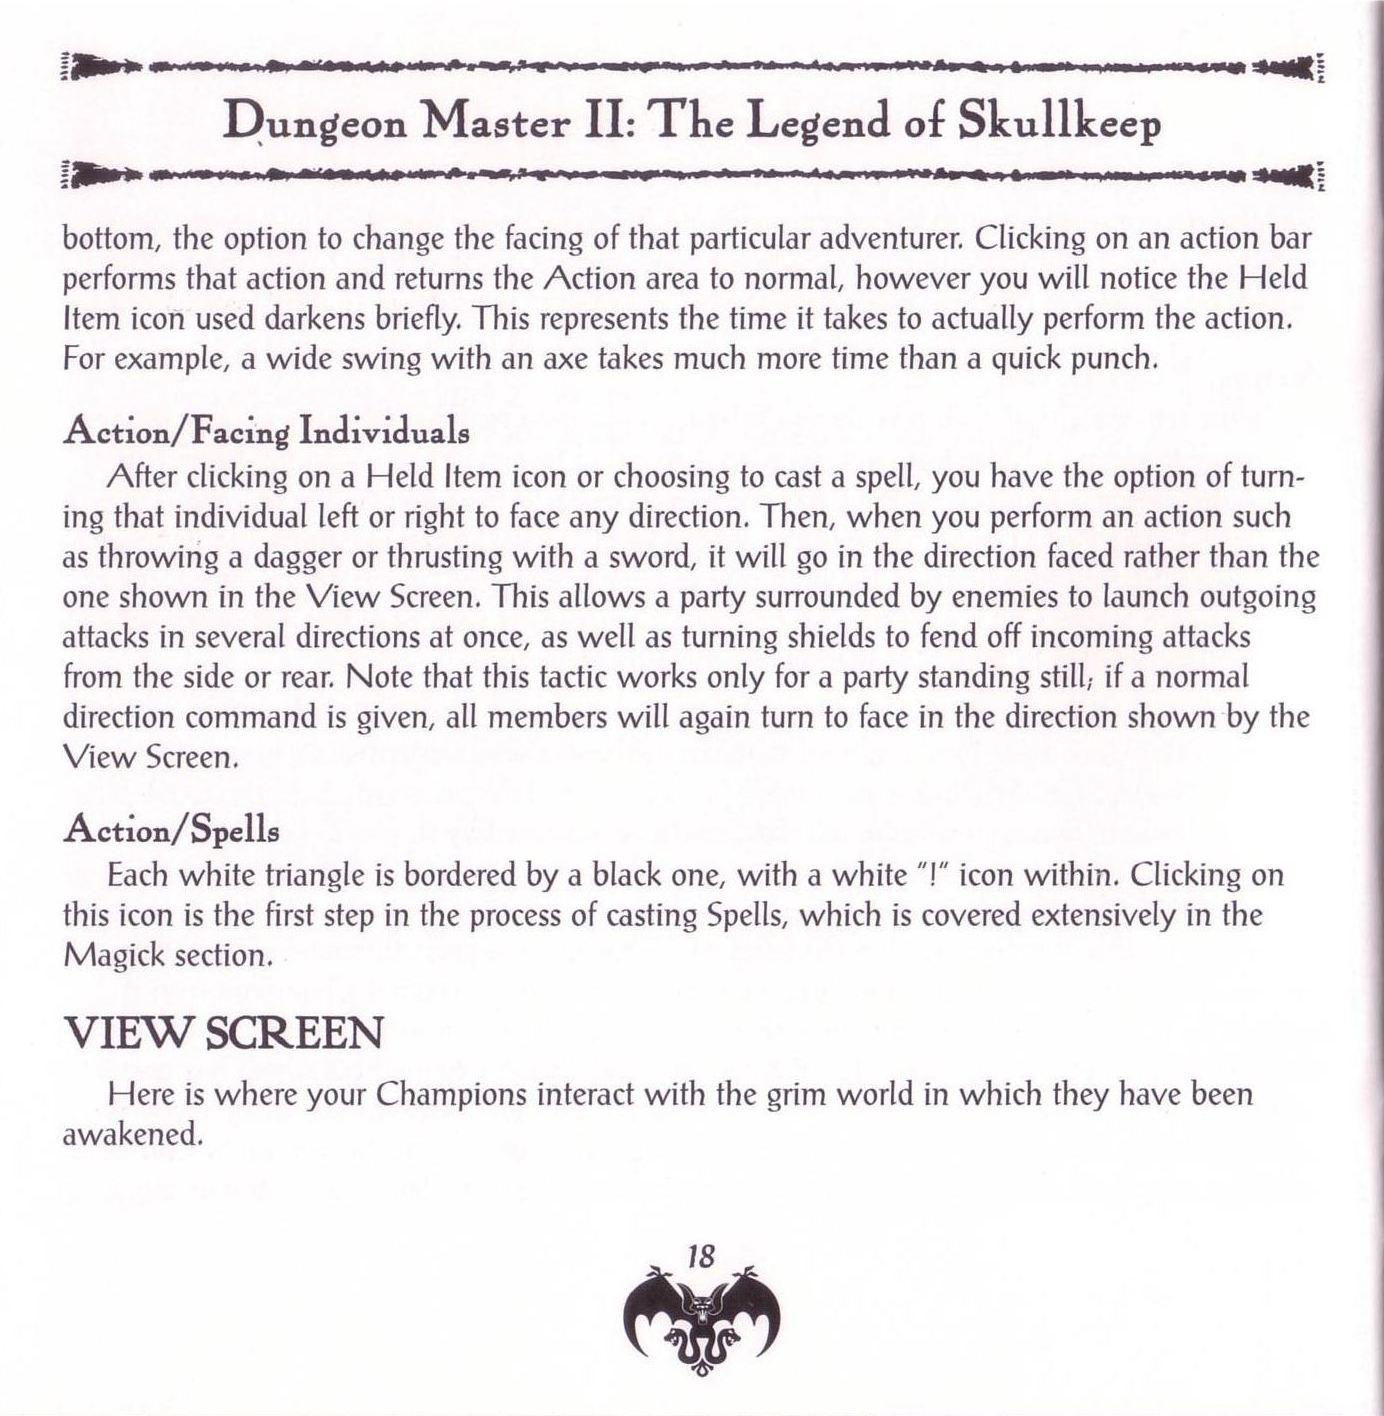 Game - Dungeon Master II - US - PC - Jewel Case - Booklet - Page 020 - Scan